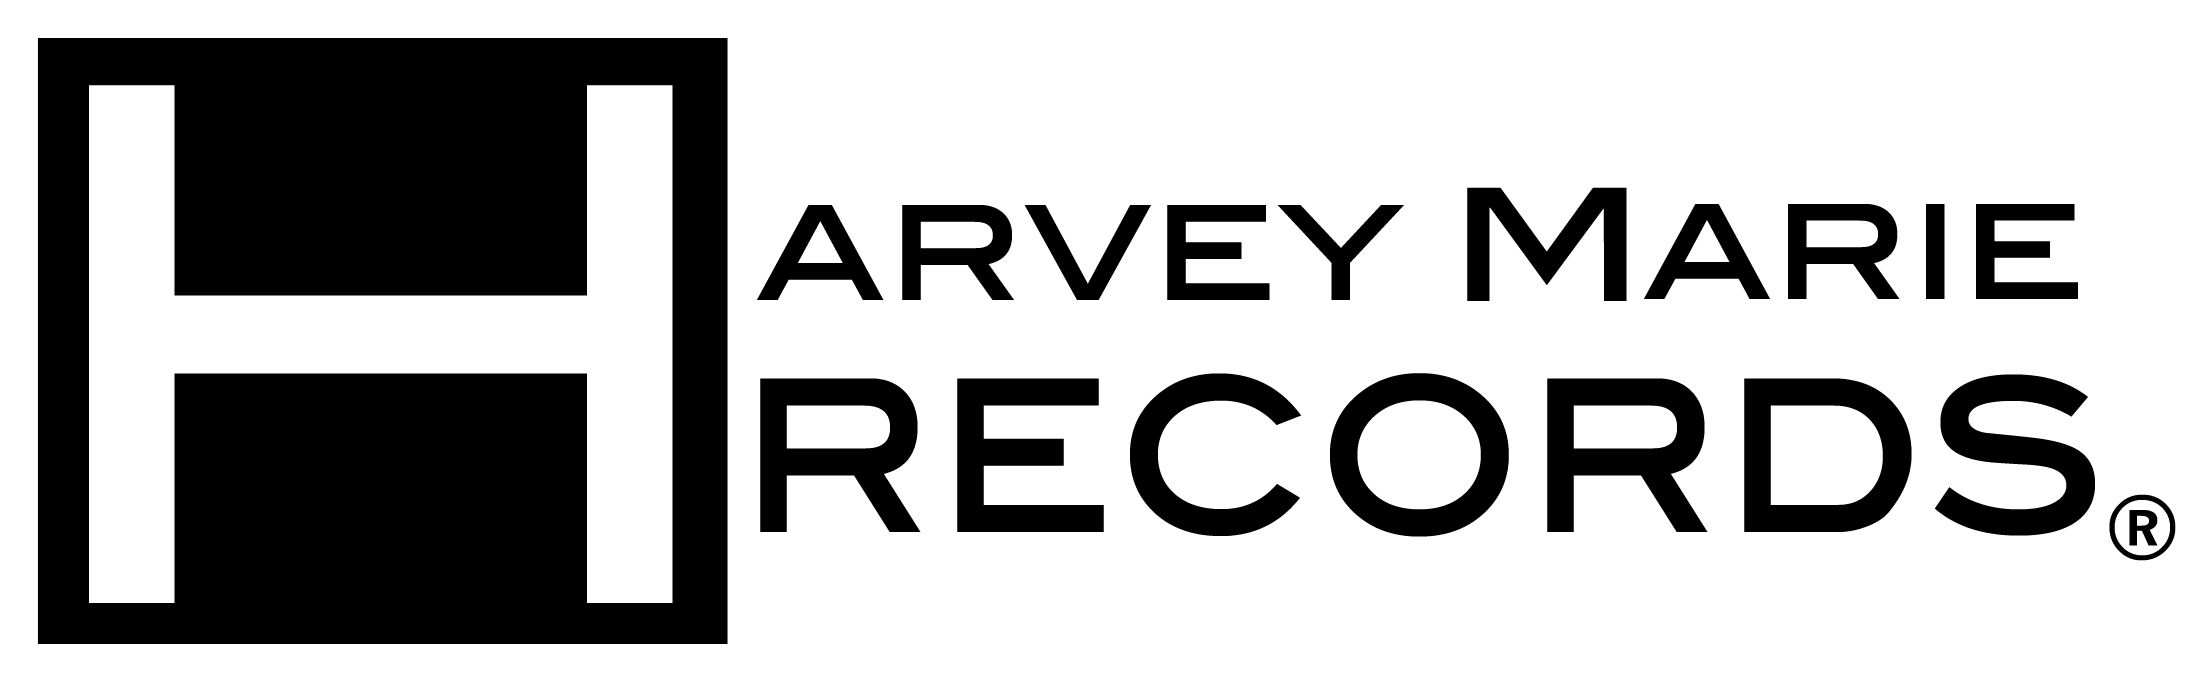 Harvey Marie Records